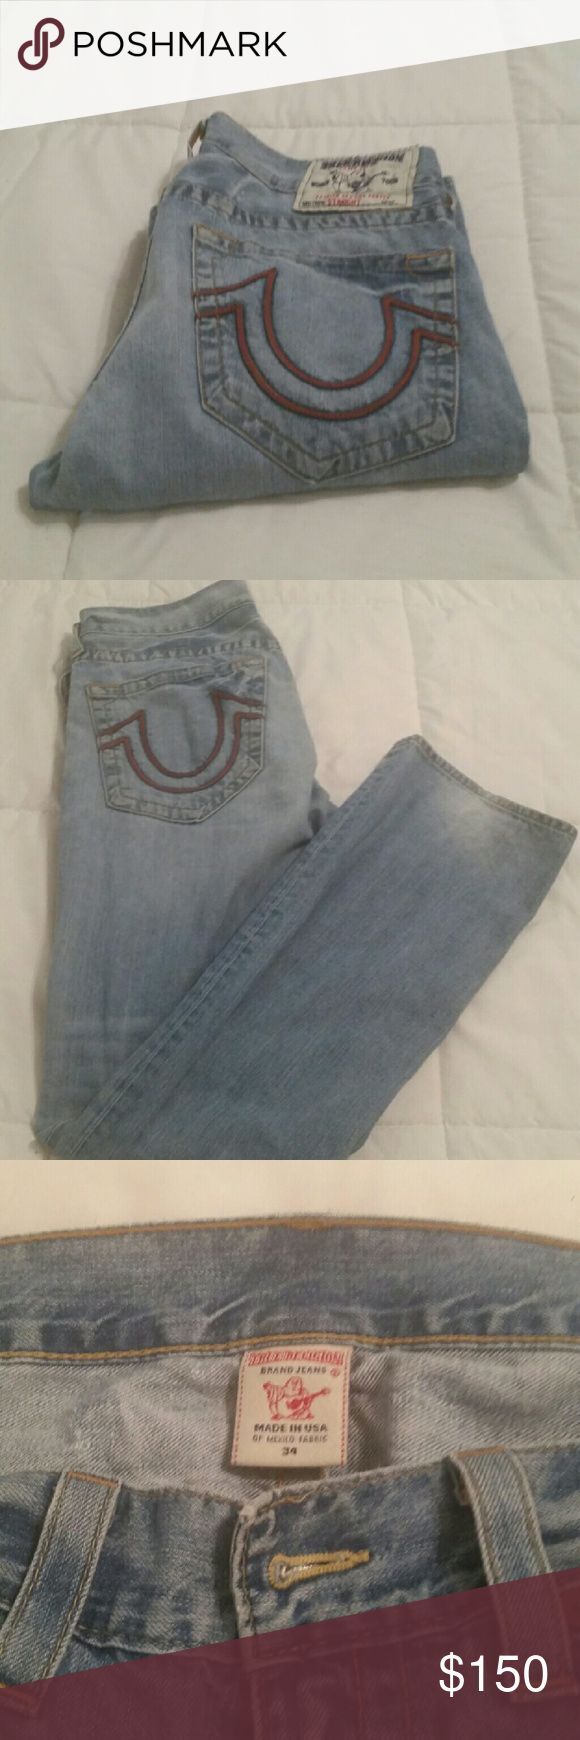 Mens true religion jeans size 34 Mens True religion jeans size 34 inseam 32. lightly worn. Light blue. Great Condition. Offers accepted. True Religion Jeans Straight